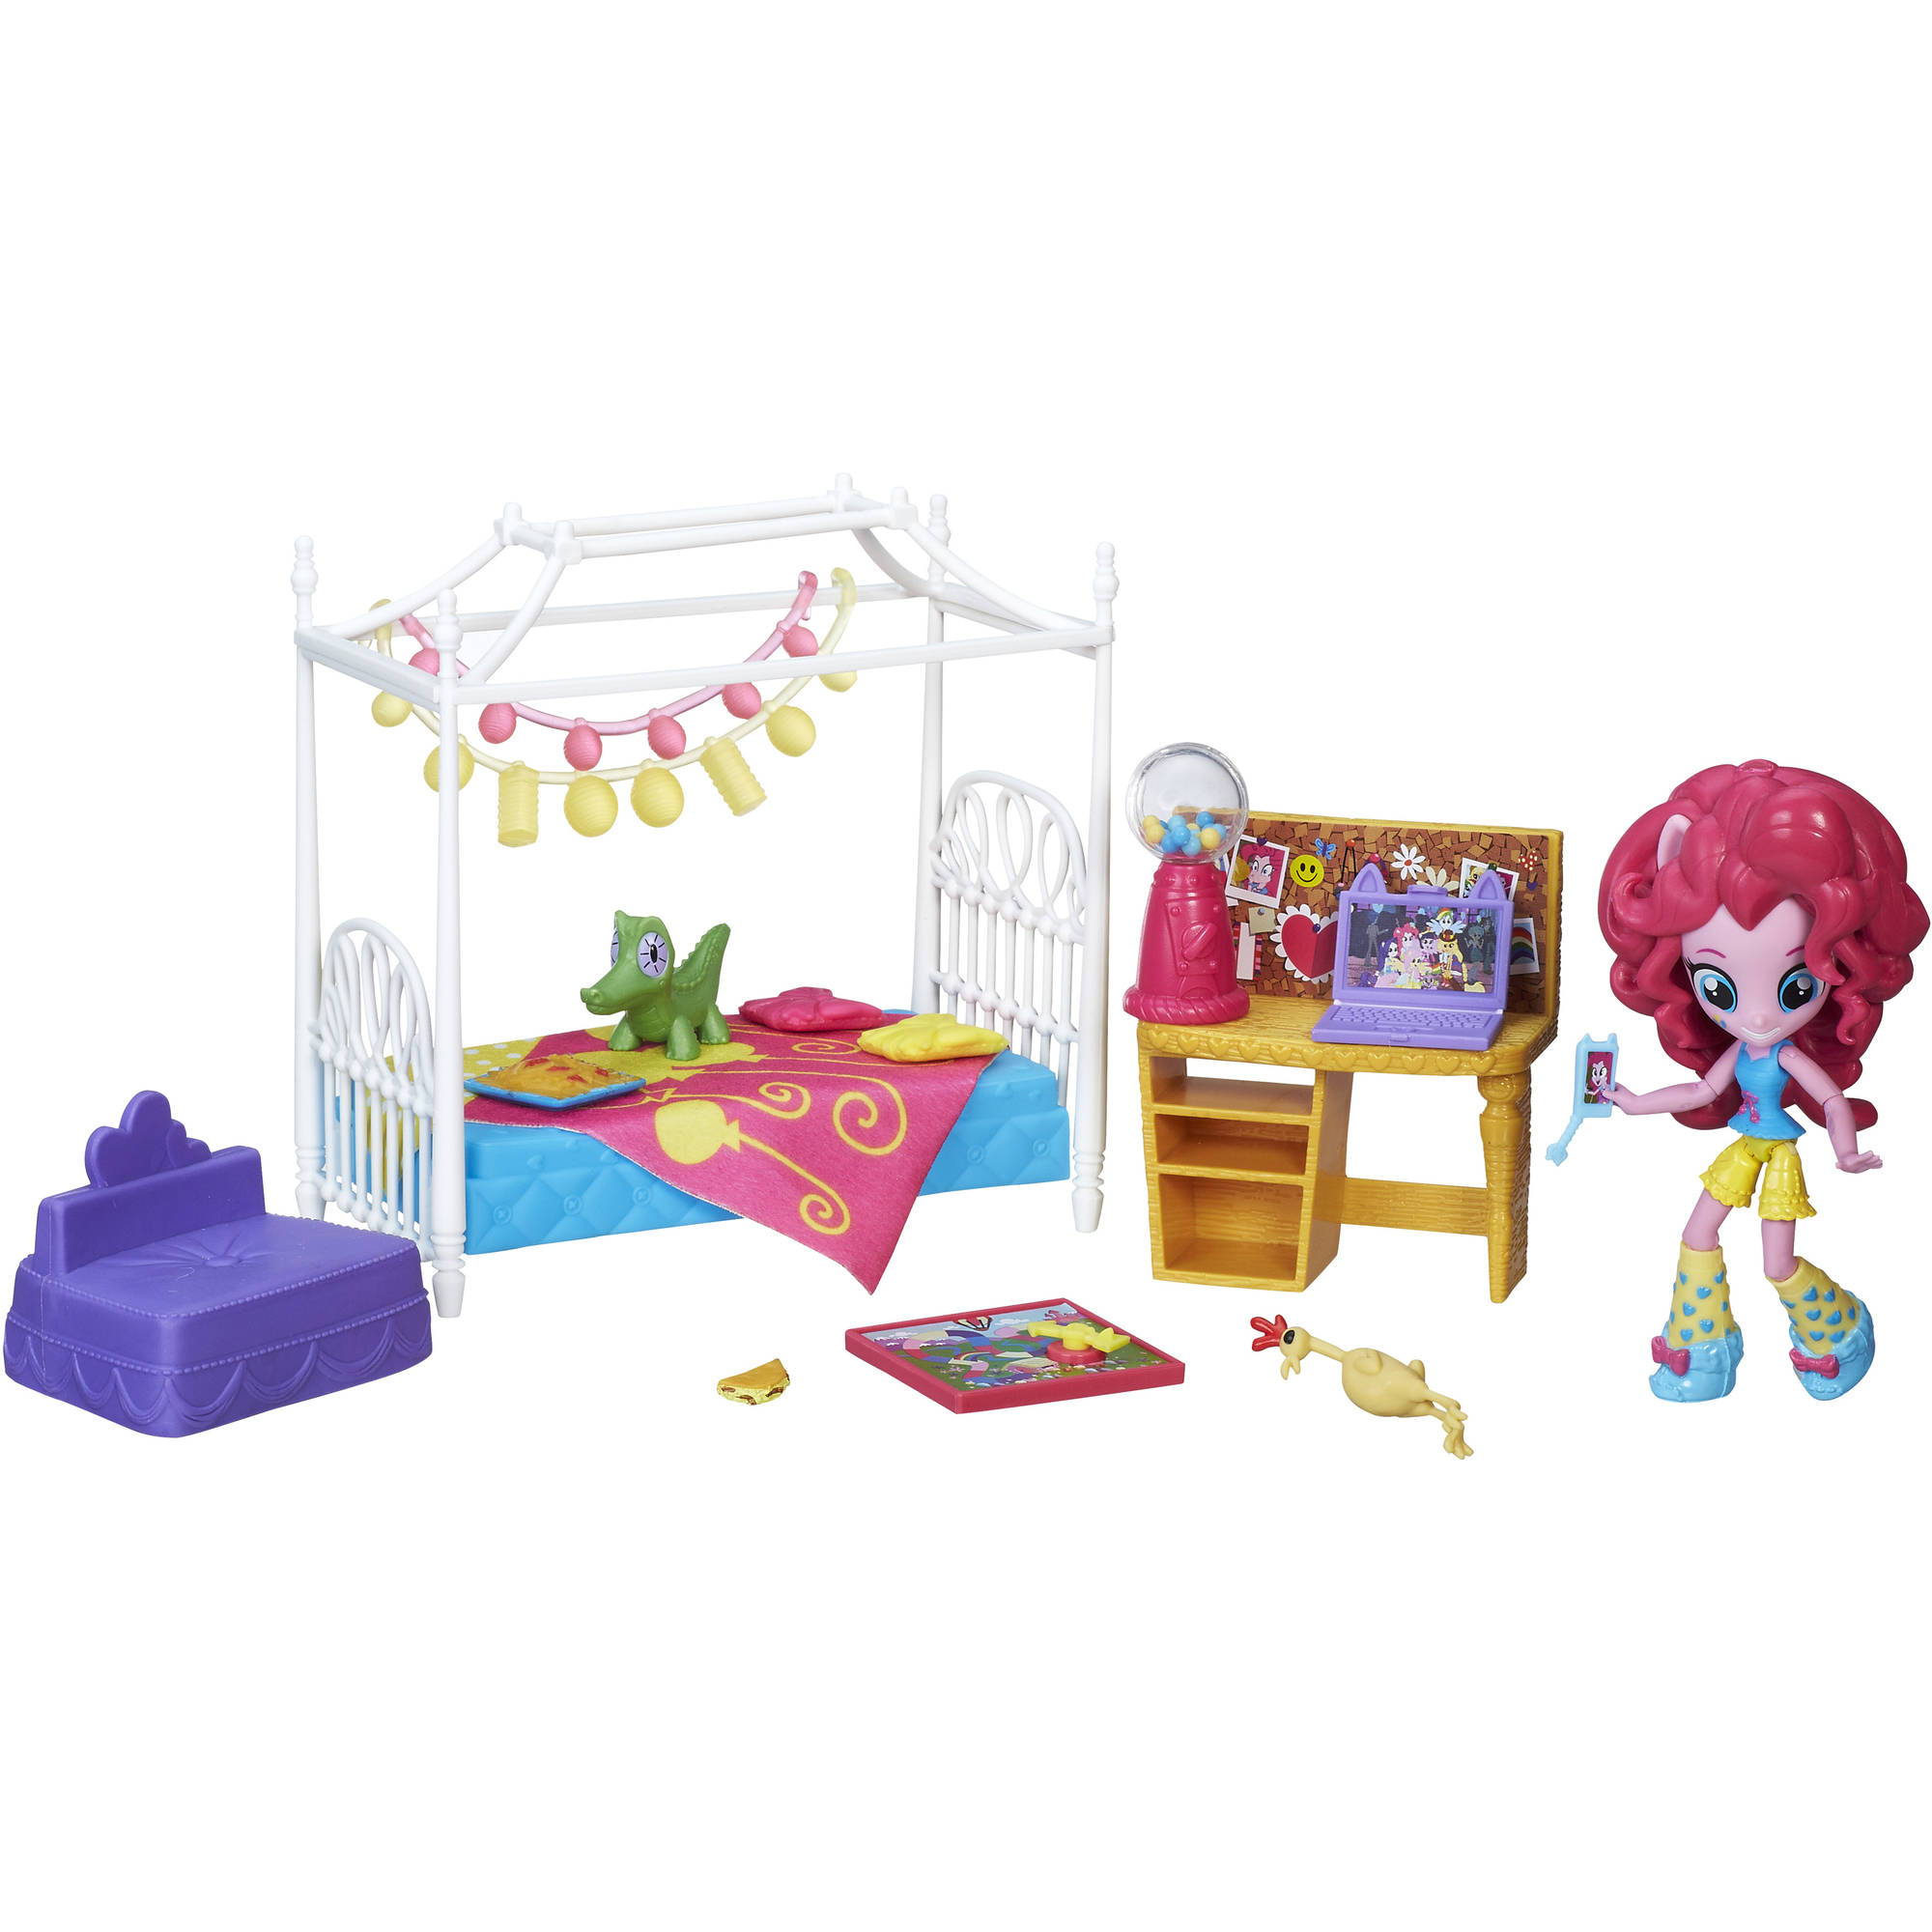 My Little Pony Equestria Girls Minis Pinkie Pie Slumber Party Bedroom Set by Hasbro